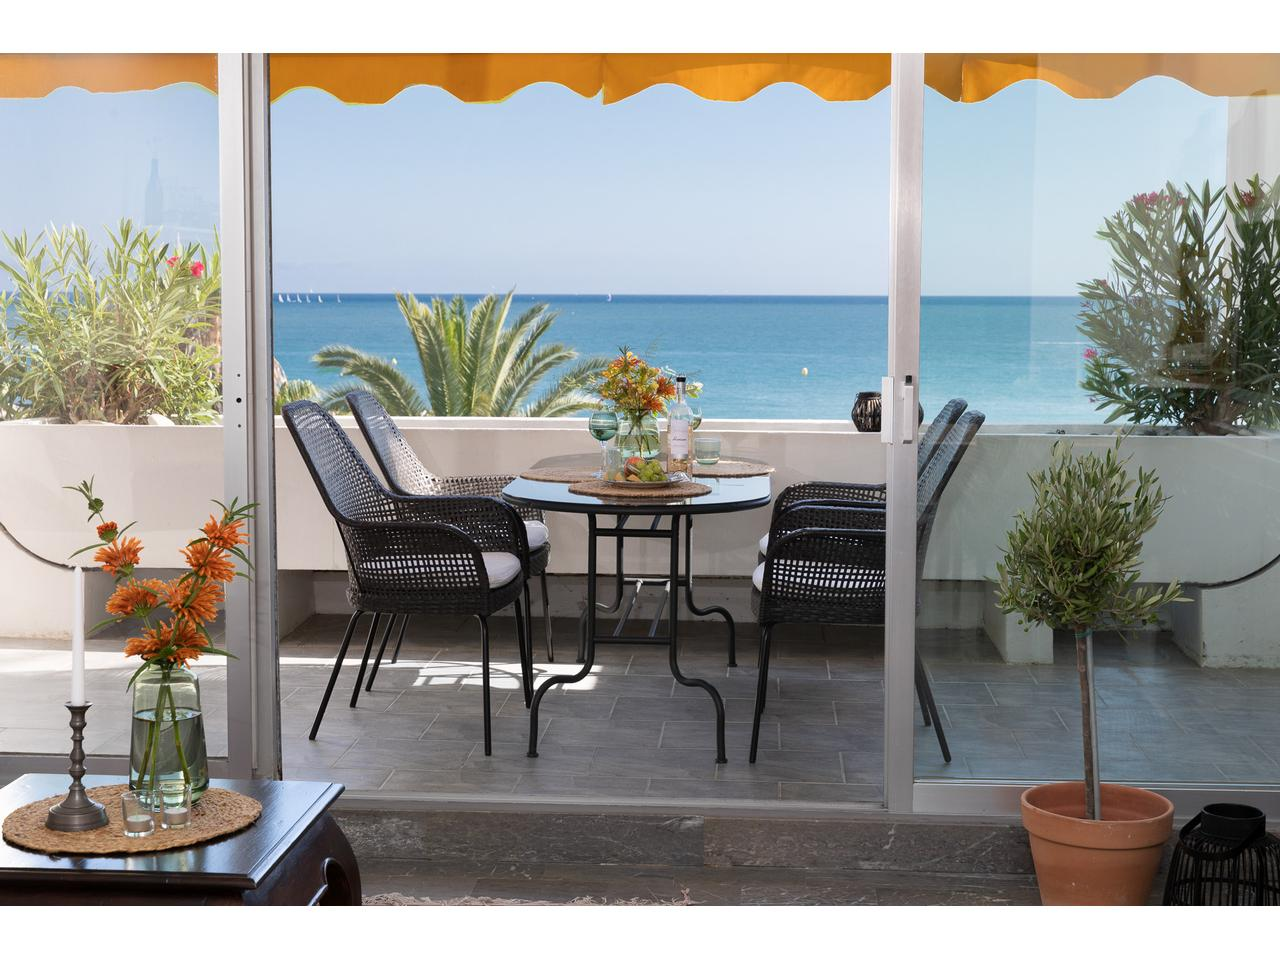 Appartement 3 pieces vue mer plage saint laurent